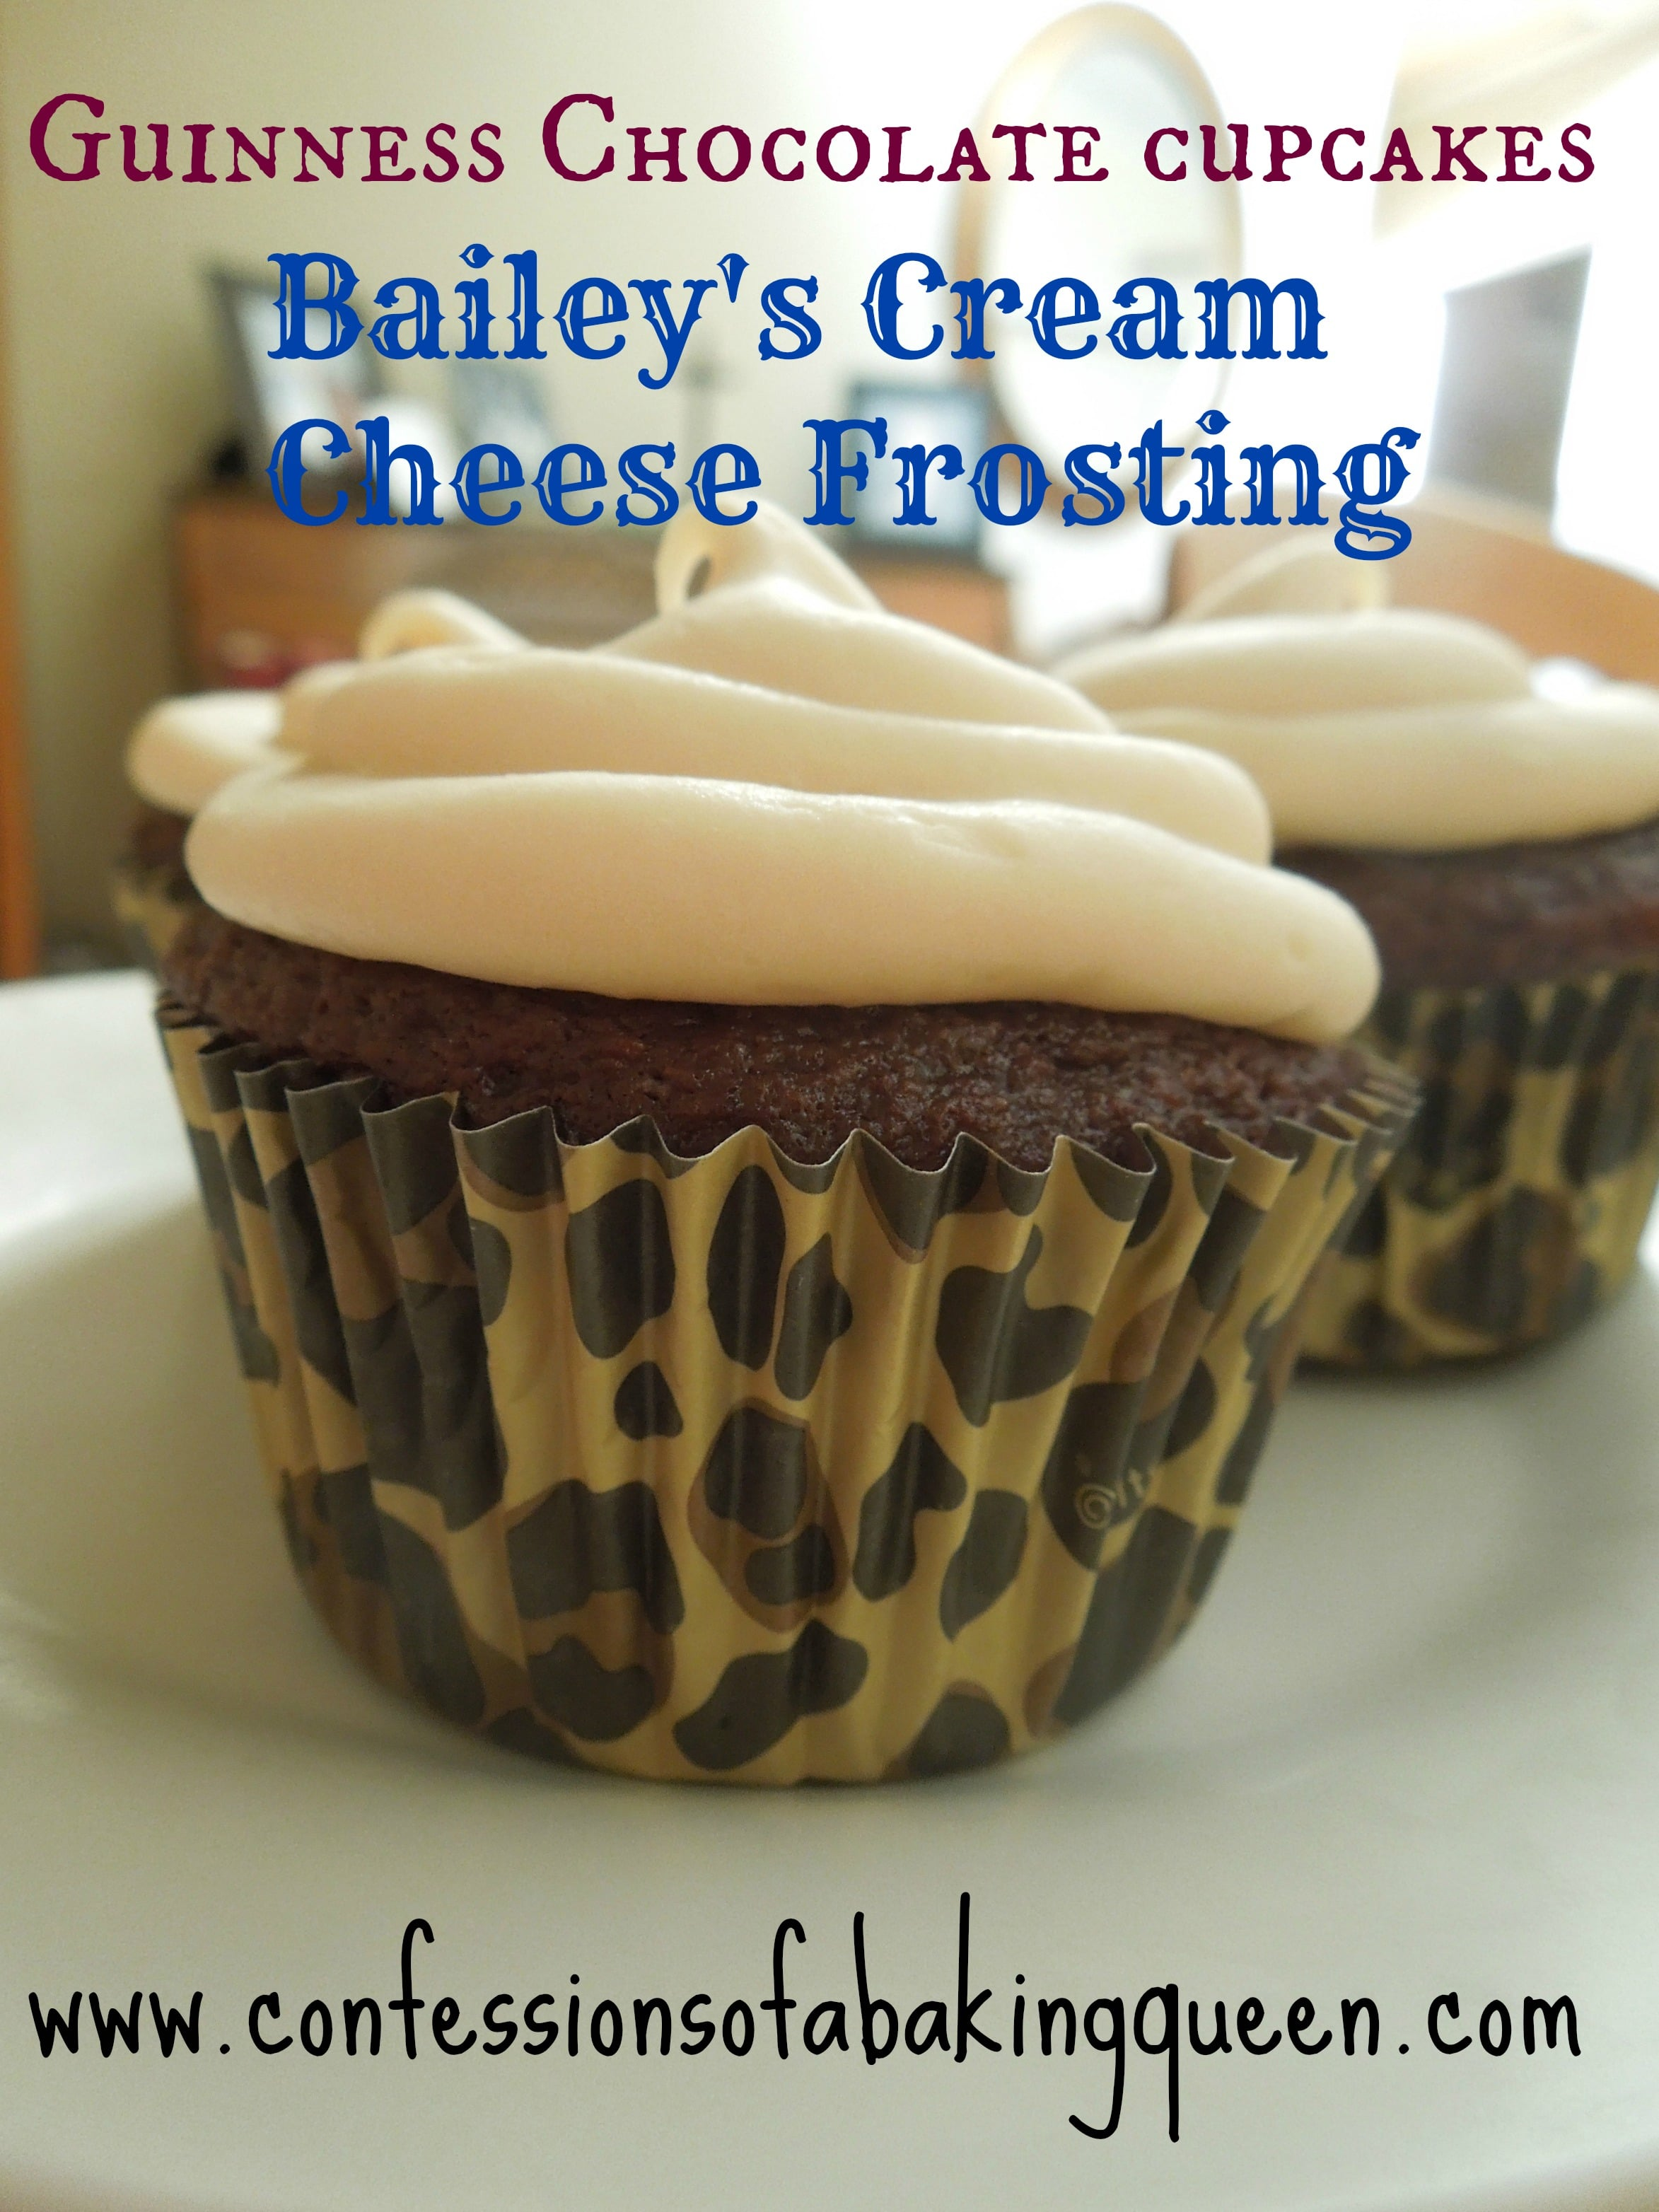 Guinness chocolate Cupcake w/ a Bailey's Cream Cheese Frosting